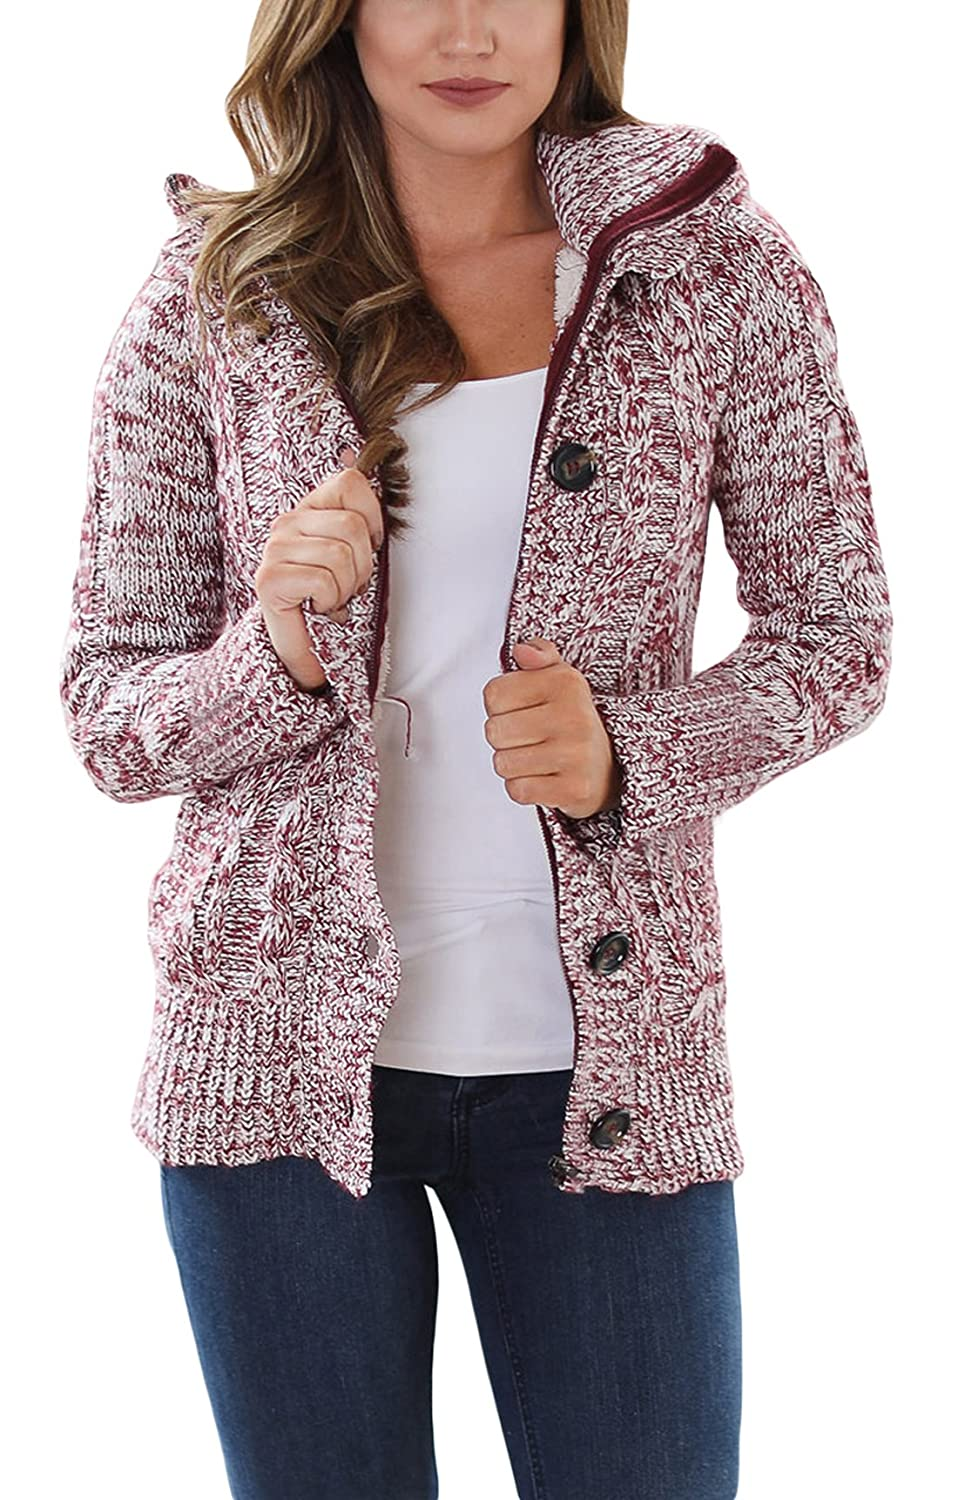 Asvivid Womens Hooded Cable Knit Button Down Outwear Fleece Sweater Cardigans Coats with Pockets AF27652-A